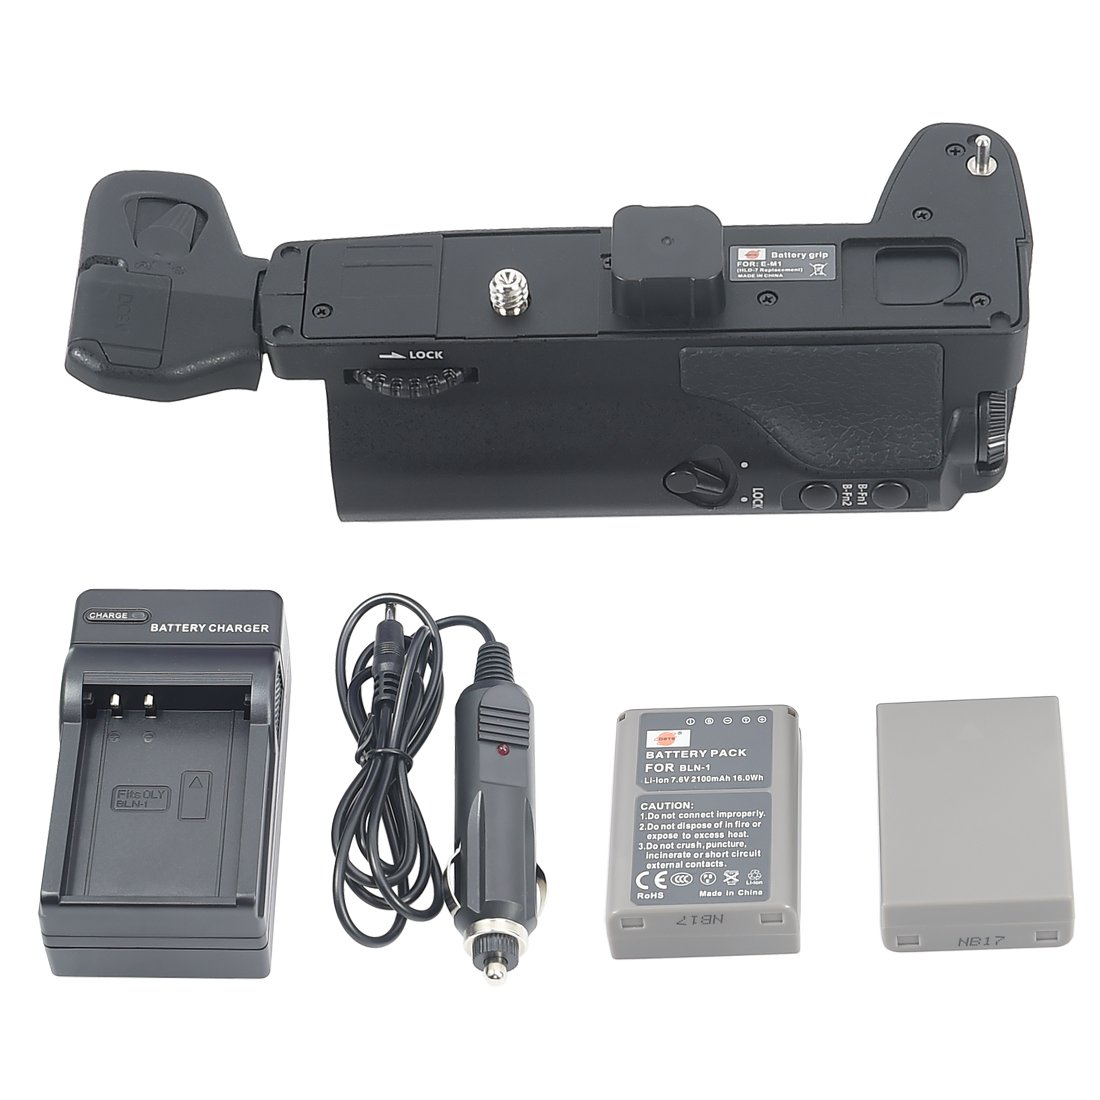 DSTE® Pro HLD-7 Vertical Battery Grip + 2x BLN-1 + DC133 Travel Charger Adapter for Olympus E-M1 SLR Digital Camera